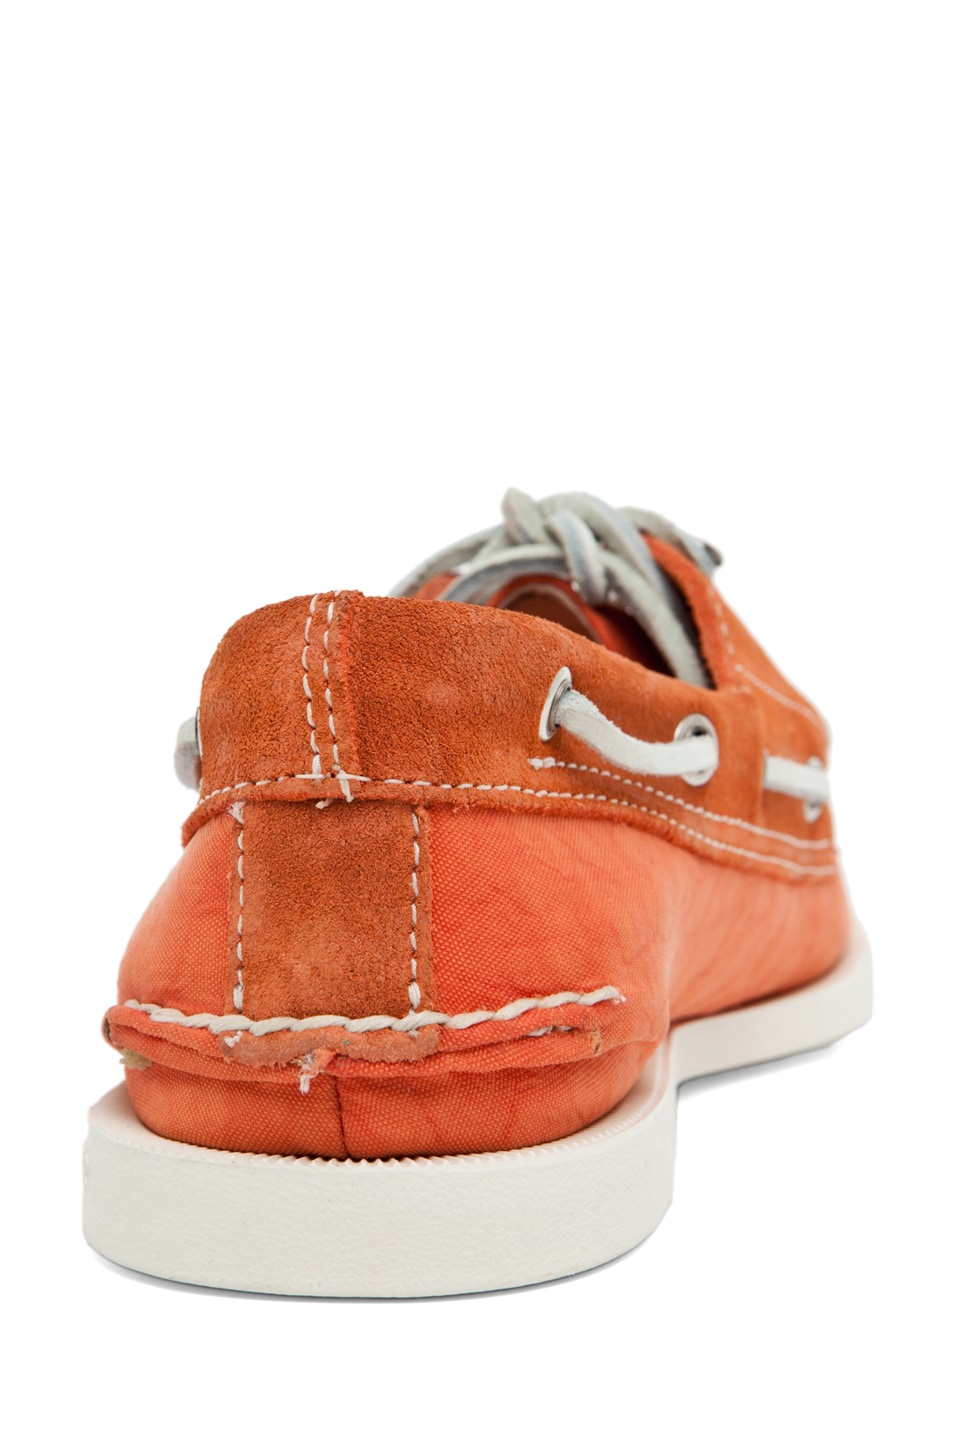 Image 3 of Band of Outsiders x Sperry Top-Sider 3 Eye Boat Shoe in Orange